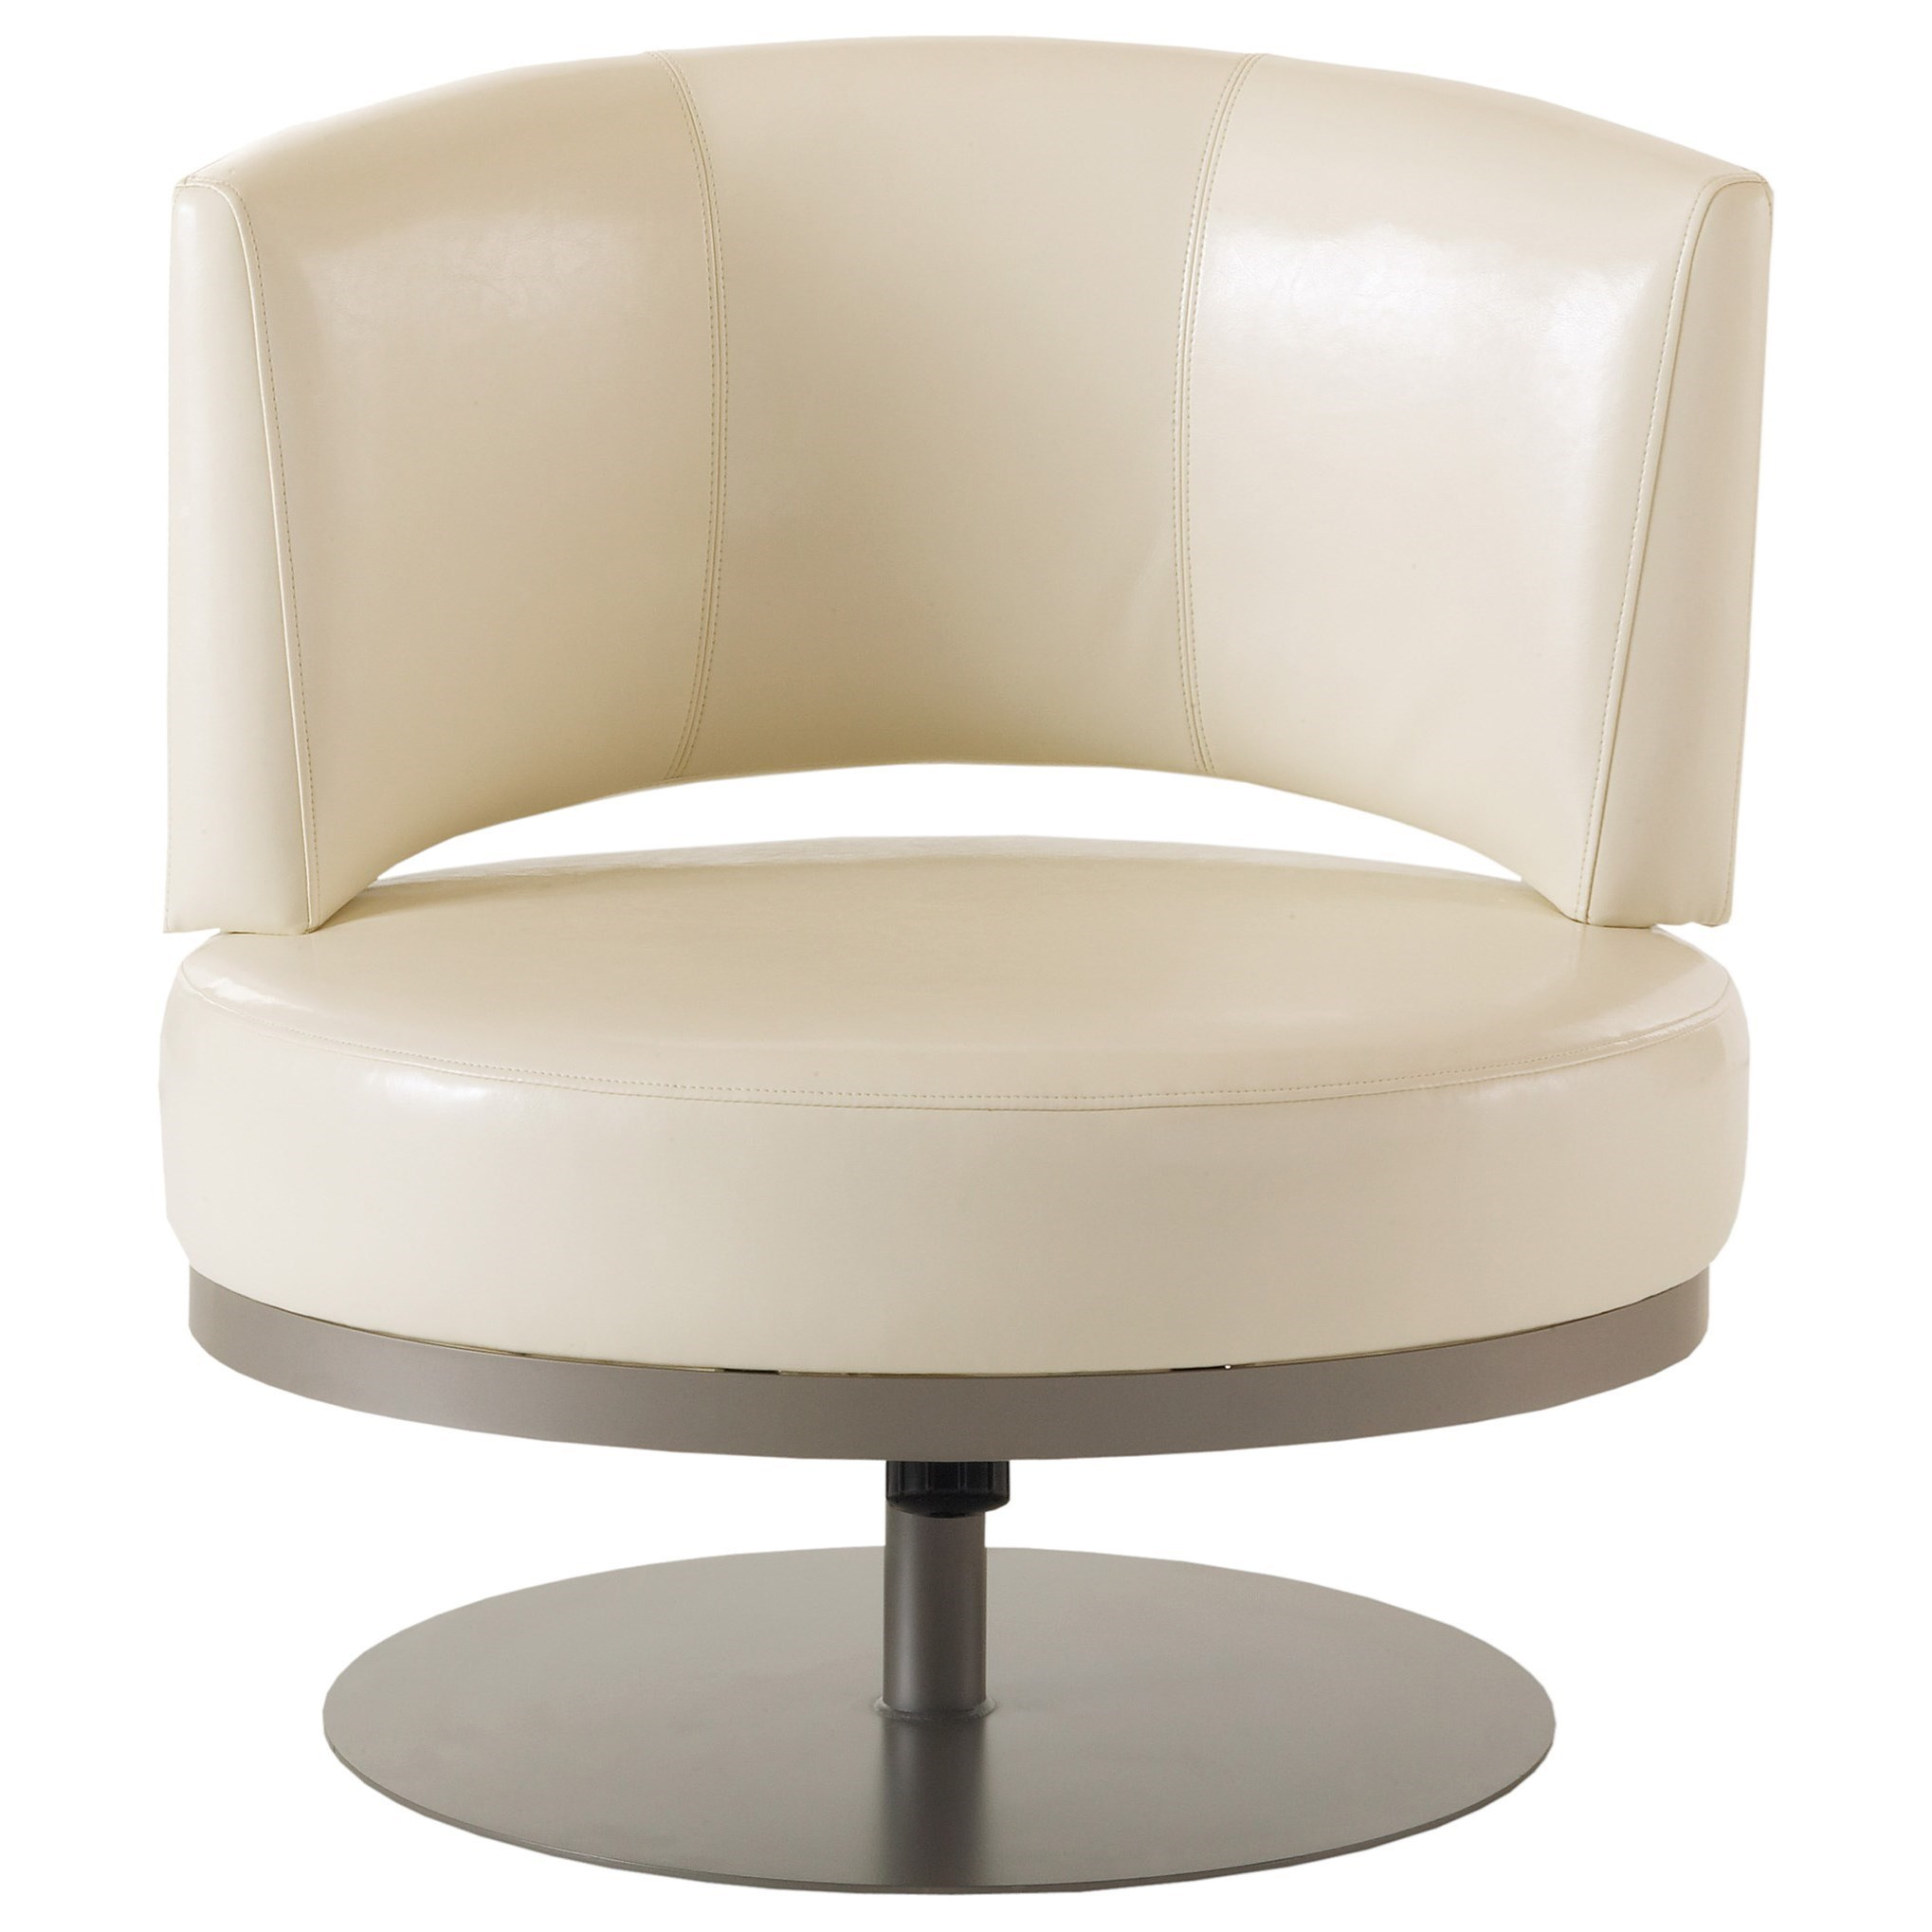 Boudoir Singapore Swivel Accent Chair by Amisco at Jordan's Home Furnishings